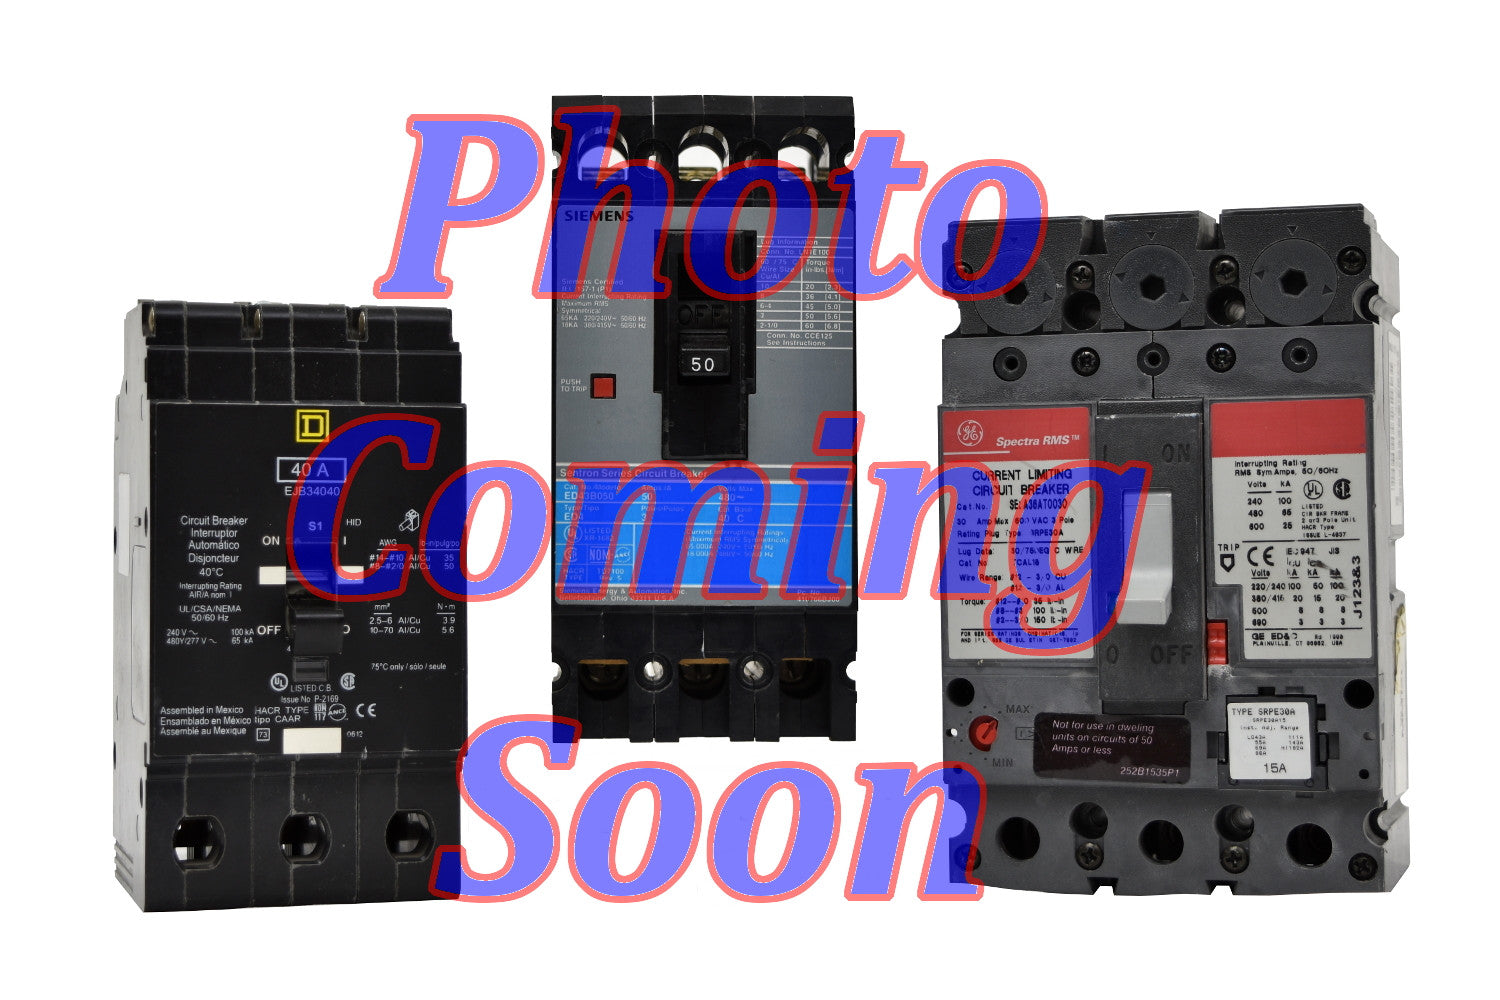 Siemens CLF62B100 Circuit Breakers